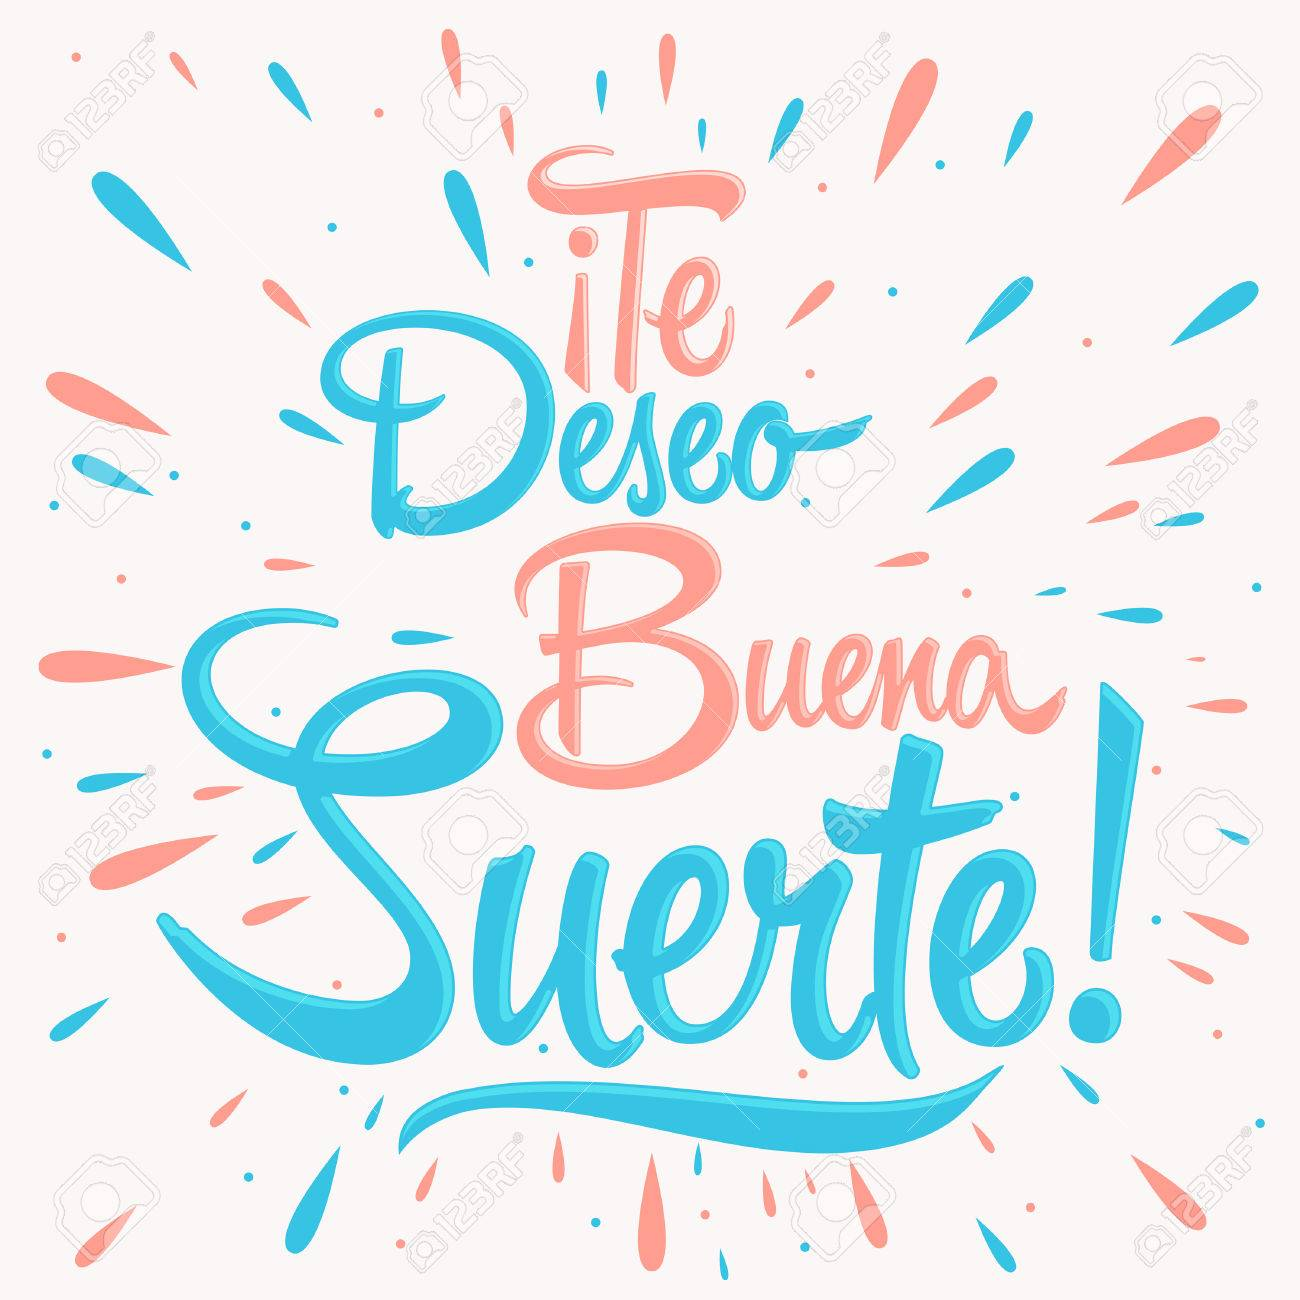 Te Deseo Buena Suerte I Wish You Good Luck Spanish Text Quote